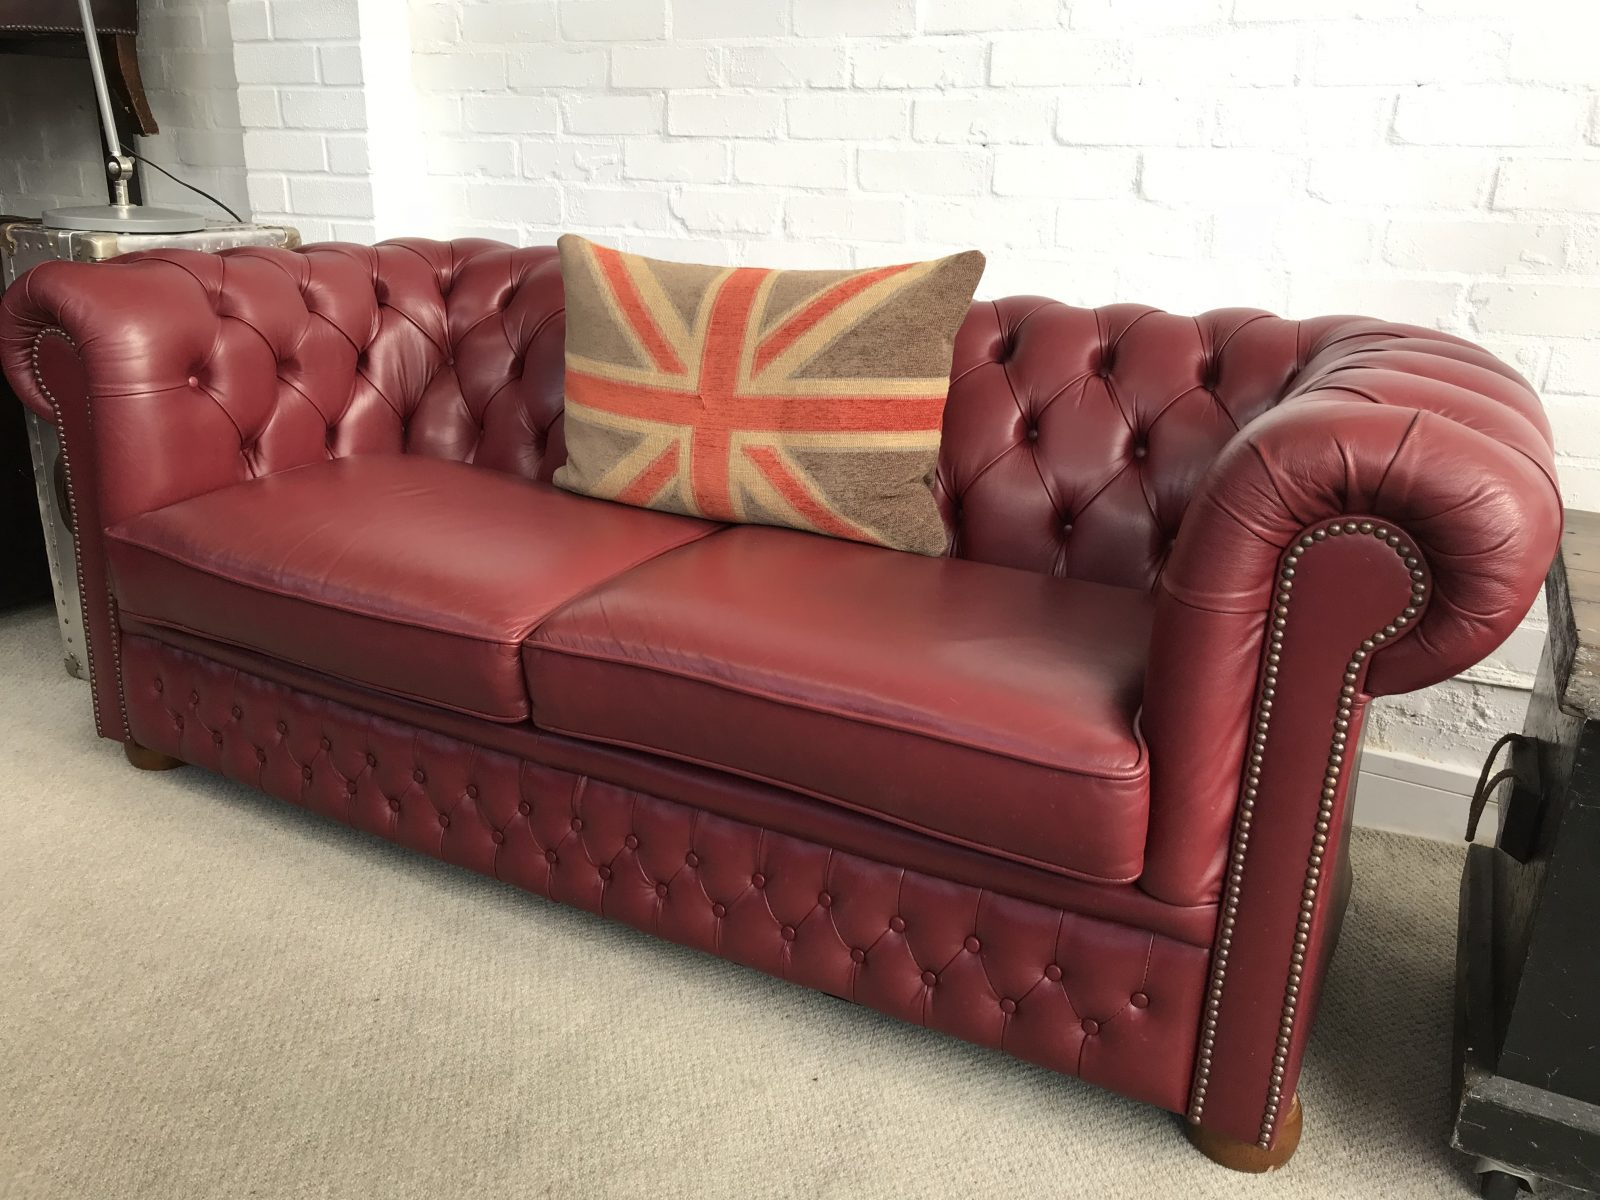 Delicieux Stunning Burgundy 3 Seater Chesterfield Sofa.